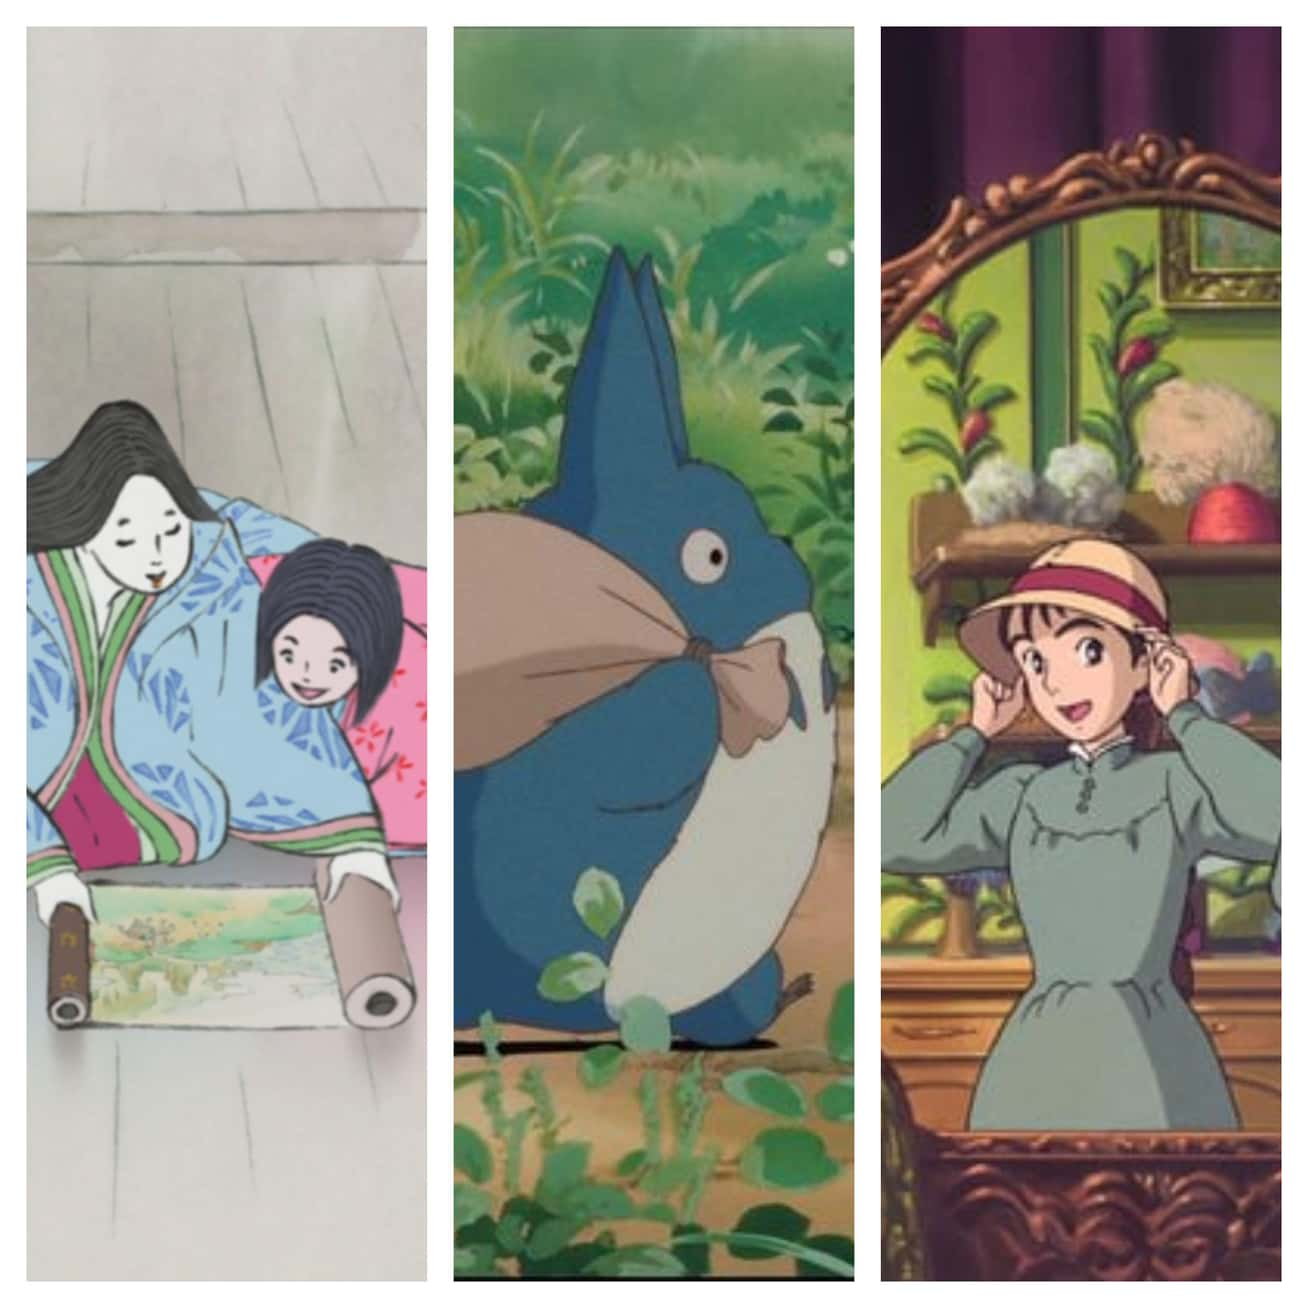 Studio Ghibli is listed (or ranked) 5 on the list The Greatest Anime Studios of All Time, Ranked